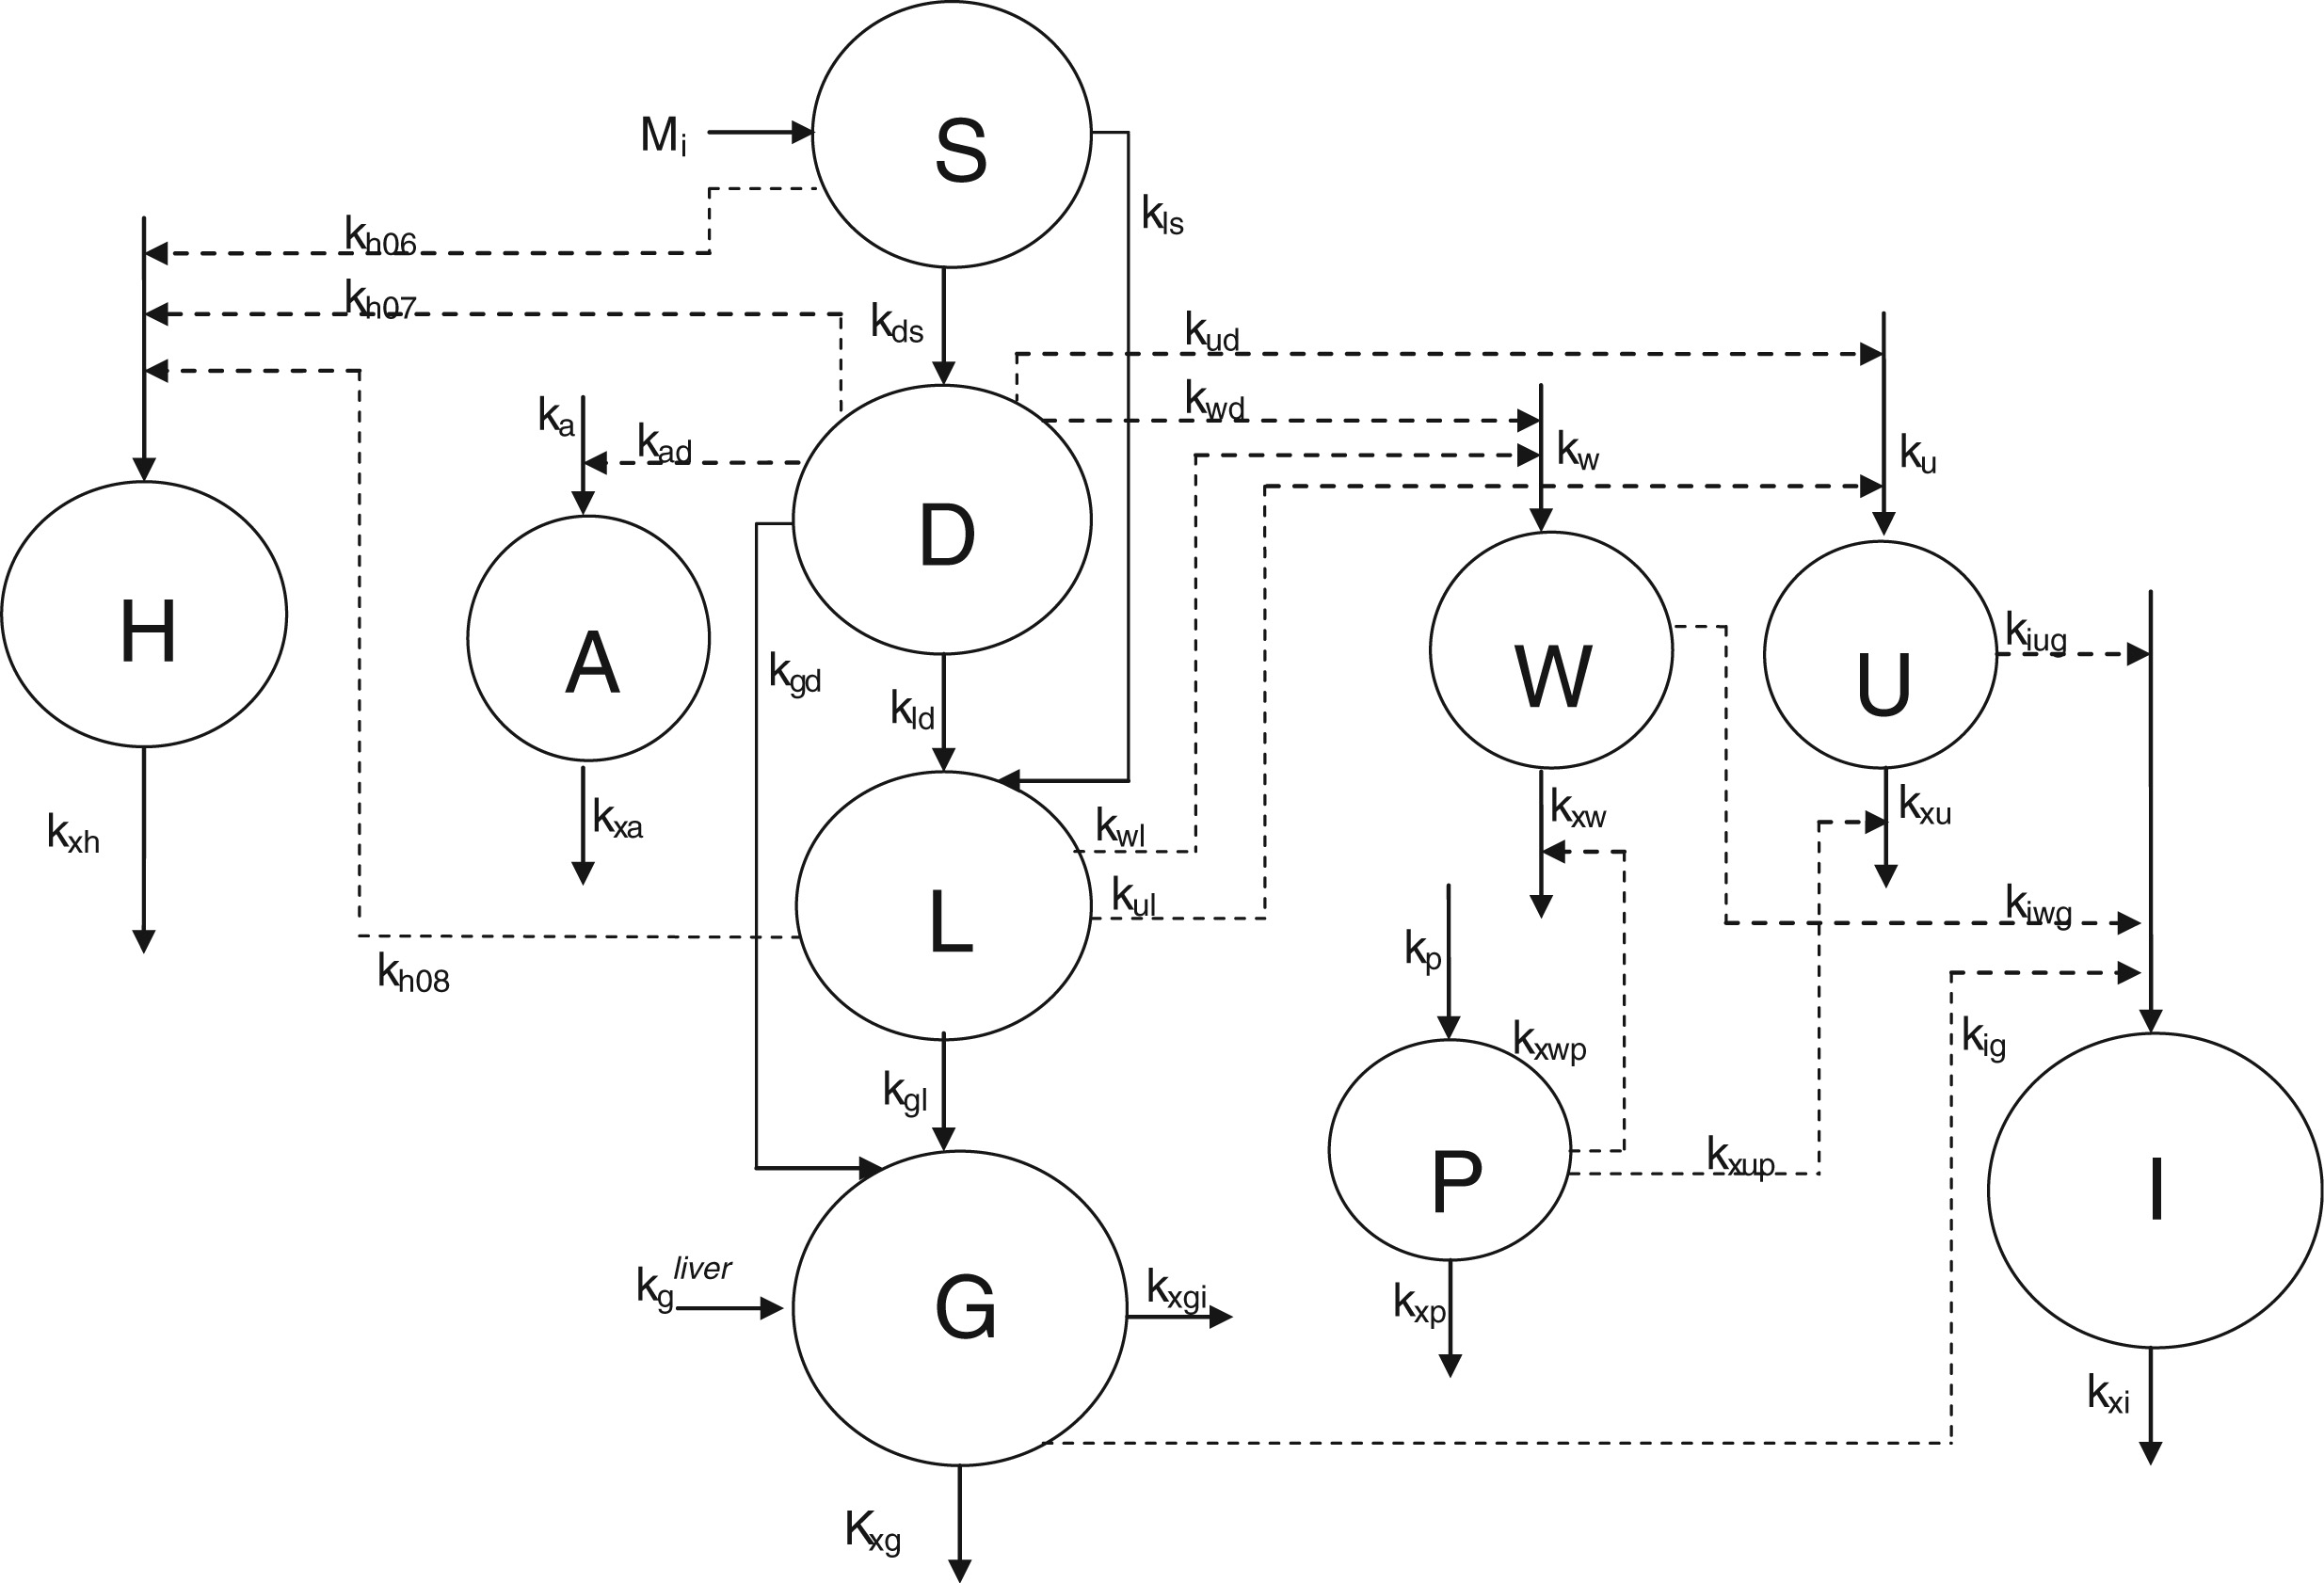 http://static-content.springer.com/image/art%3A10.1186%2F1742-4682-9-16/MediaObjects/12976_2012_Article_342_Fig1_HTML.jpg